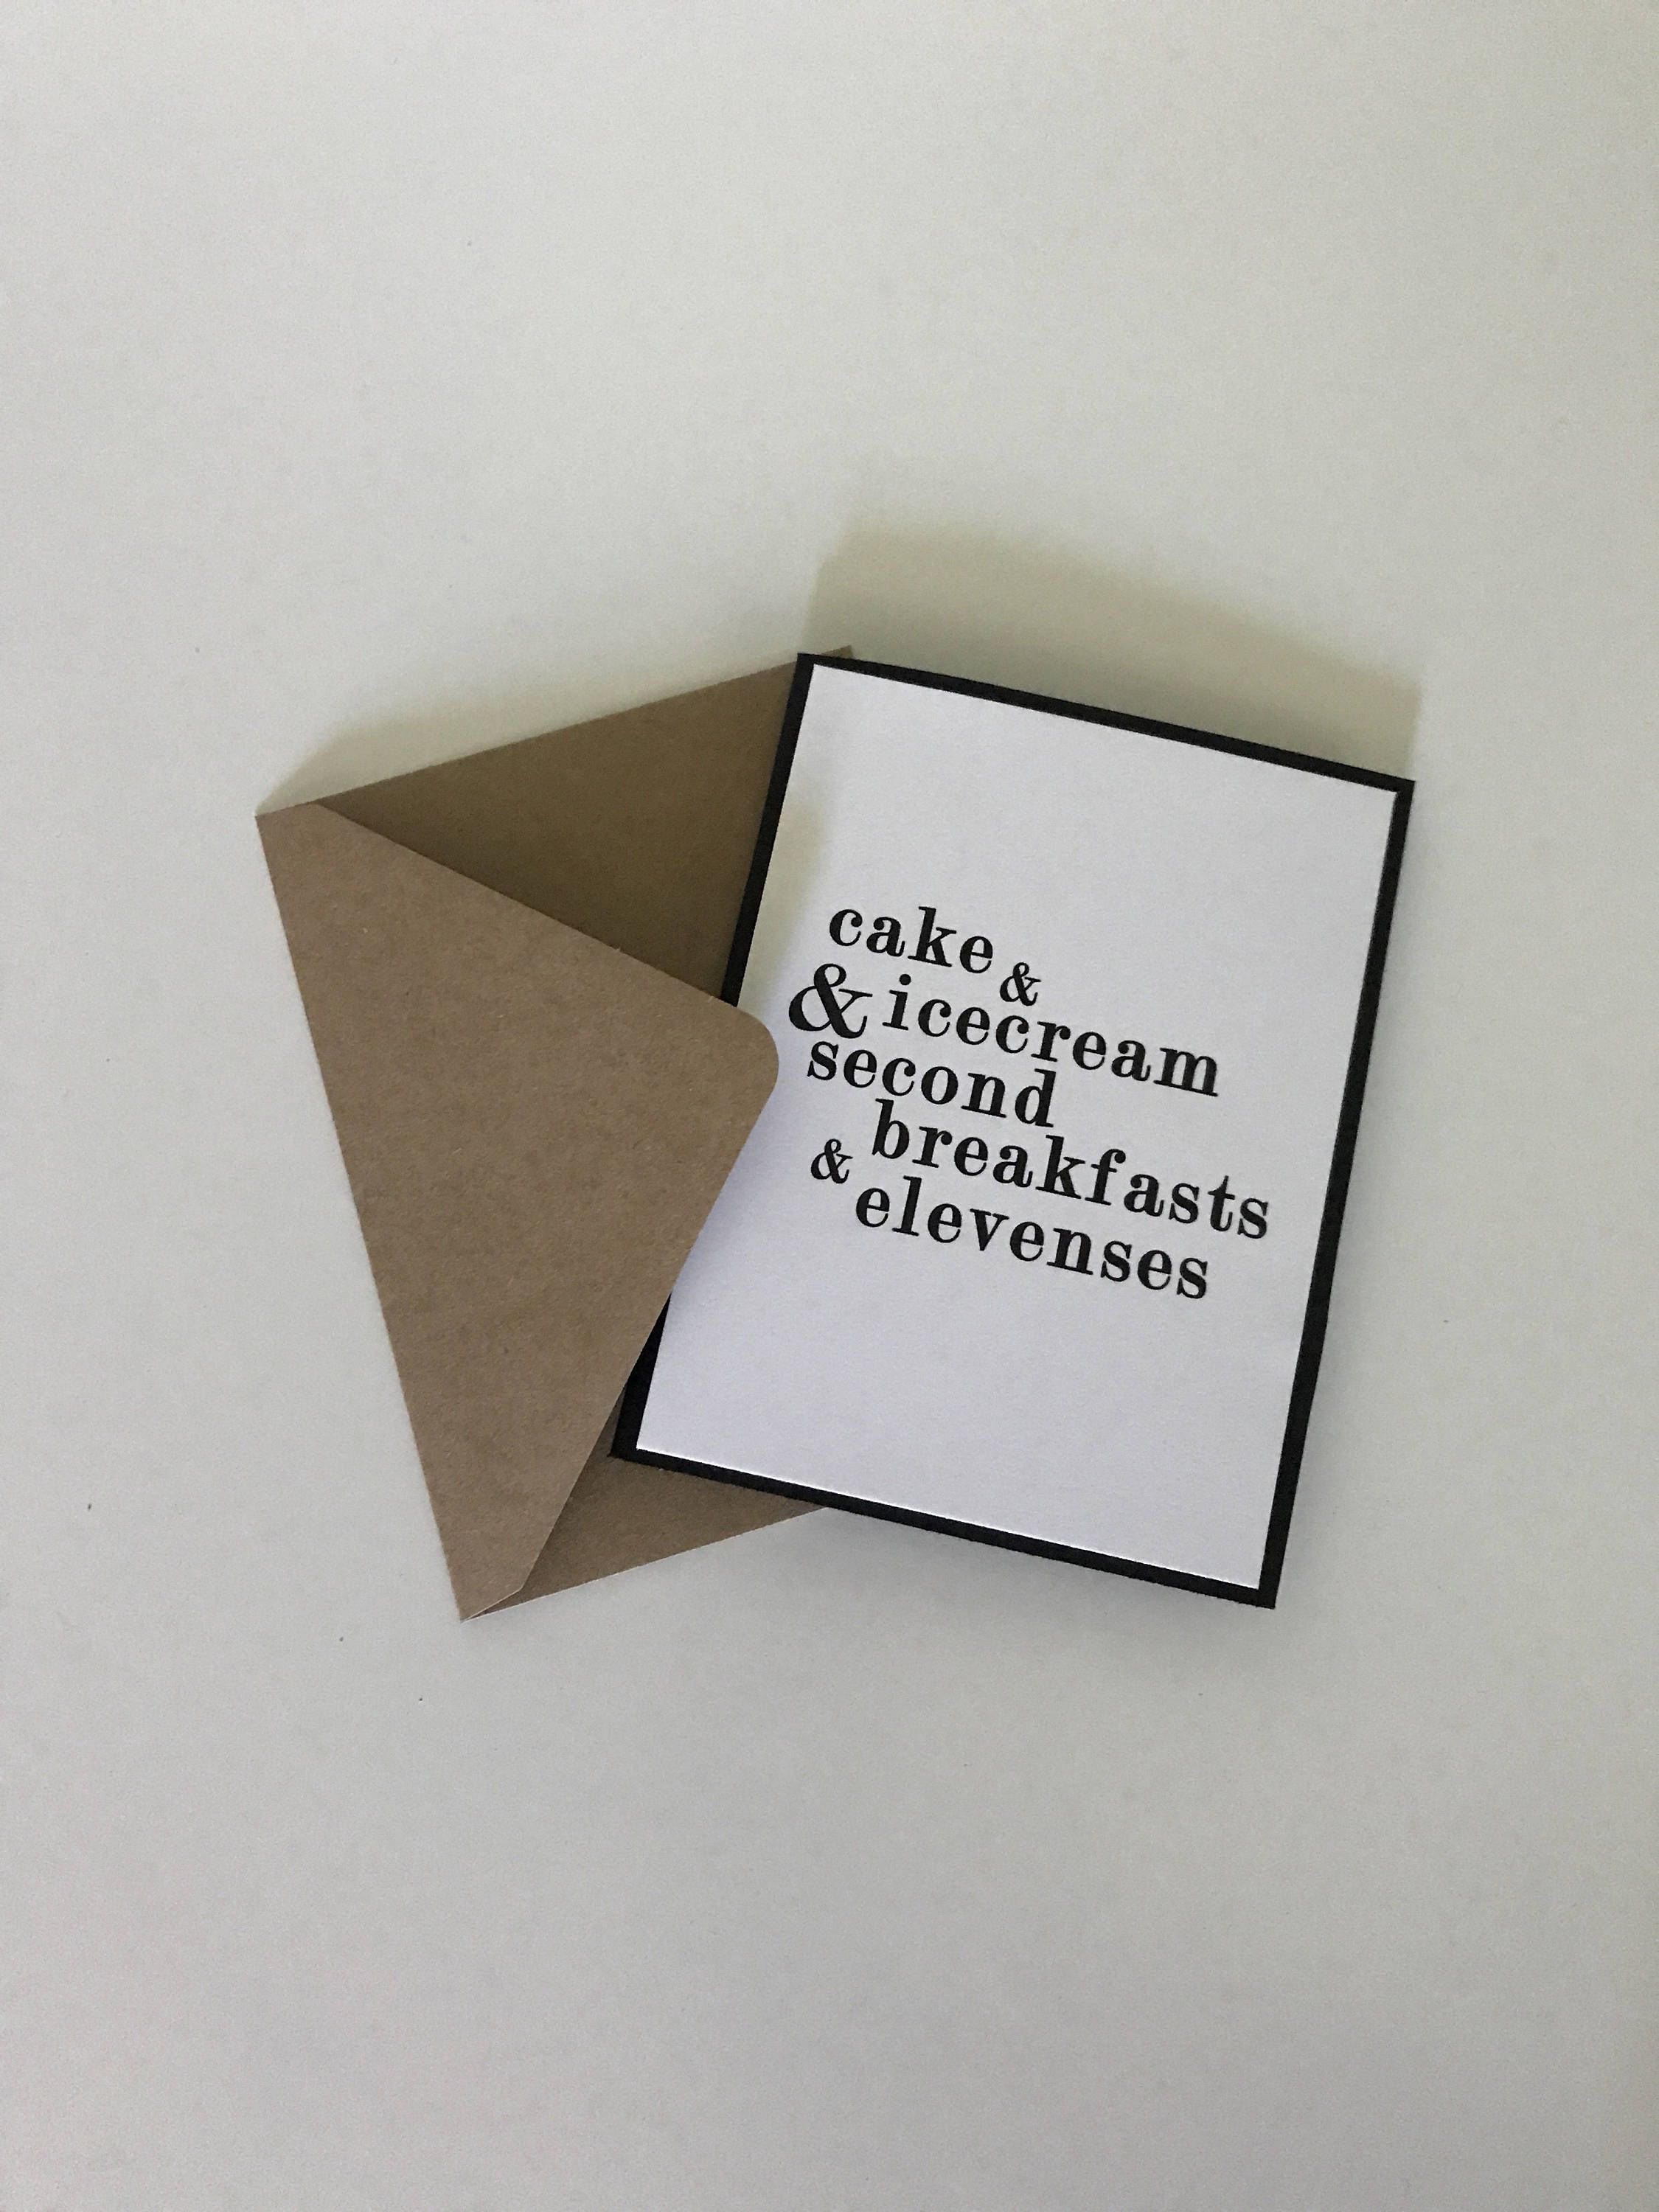 Second Breakfast Lord Of The Rings The Hobbit Funny Birthday Card By Litcardsco On Etsy Funny Birthday Cards Birthday Cards Hobbit Funny